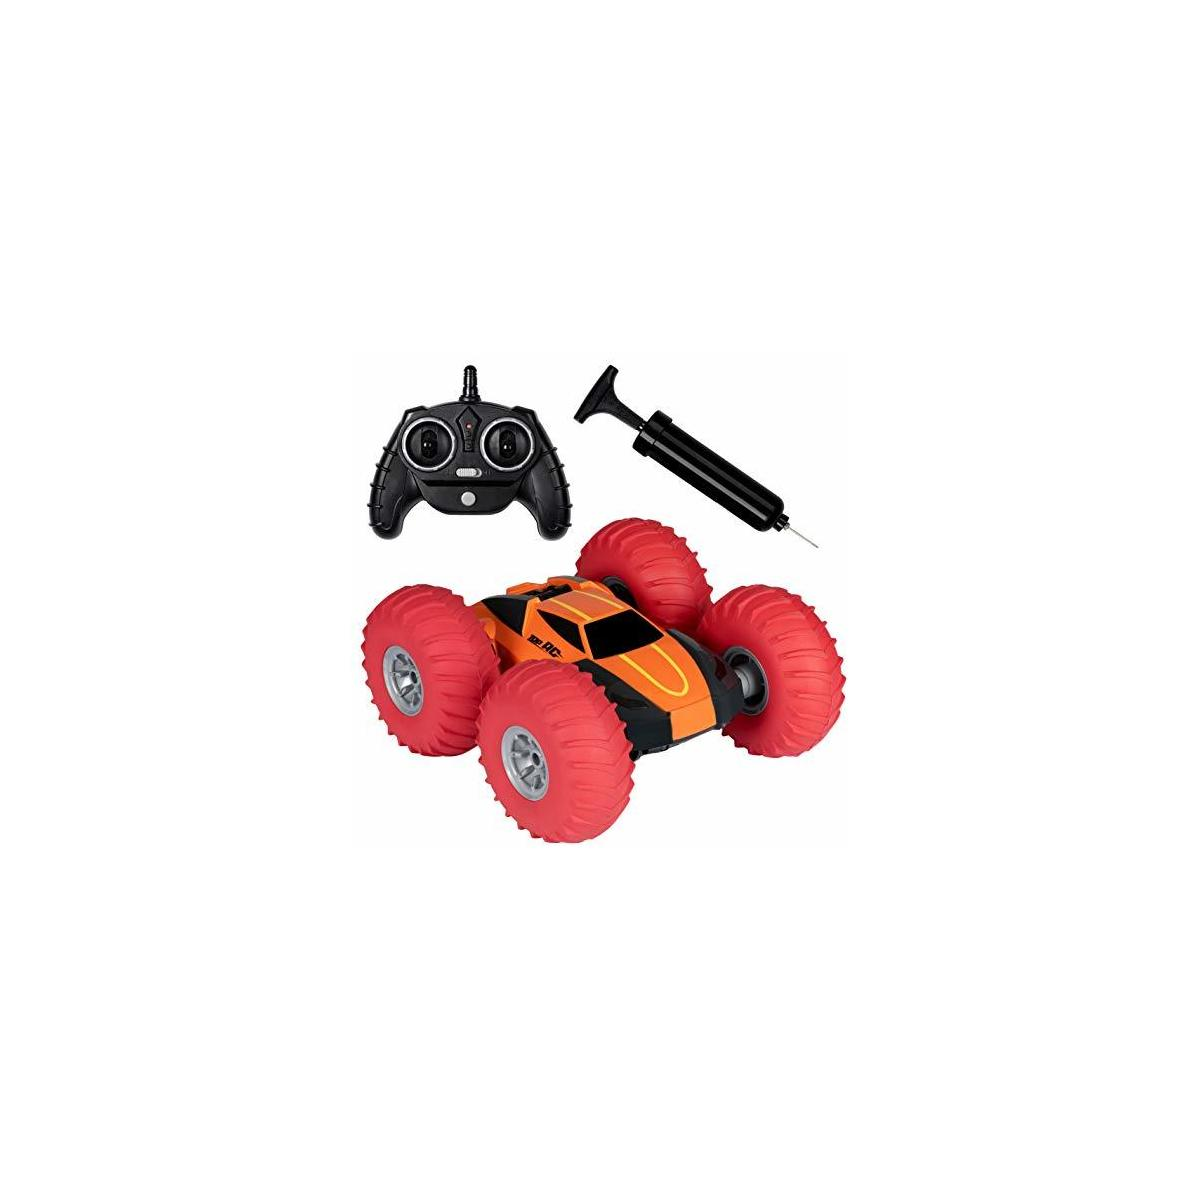 Kidstech Remote Control Race Car for Boys and Girls, 360 Degree Flips Double Sided Rotating Stunt Car with Air Tires and Pump, 2.4 GHZ High Speed R/C Car for Kids Ages 6+, Orange